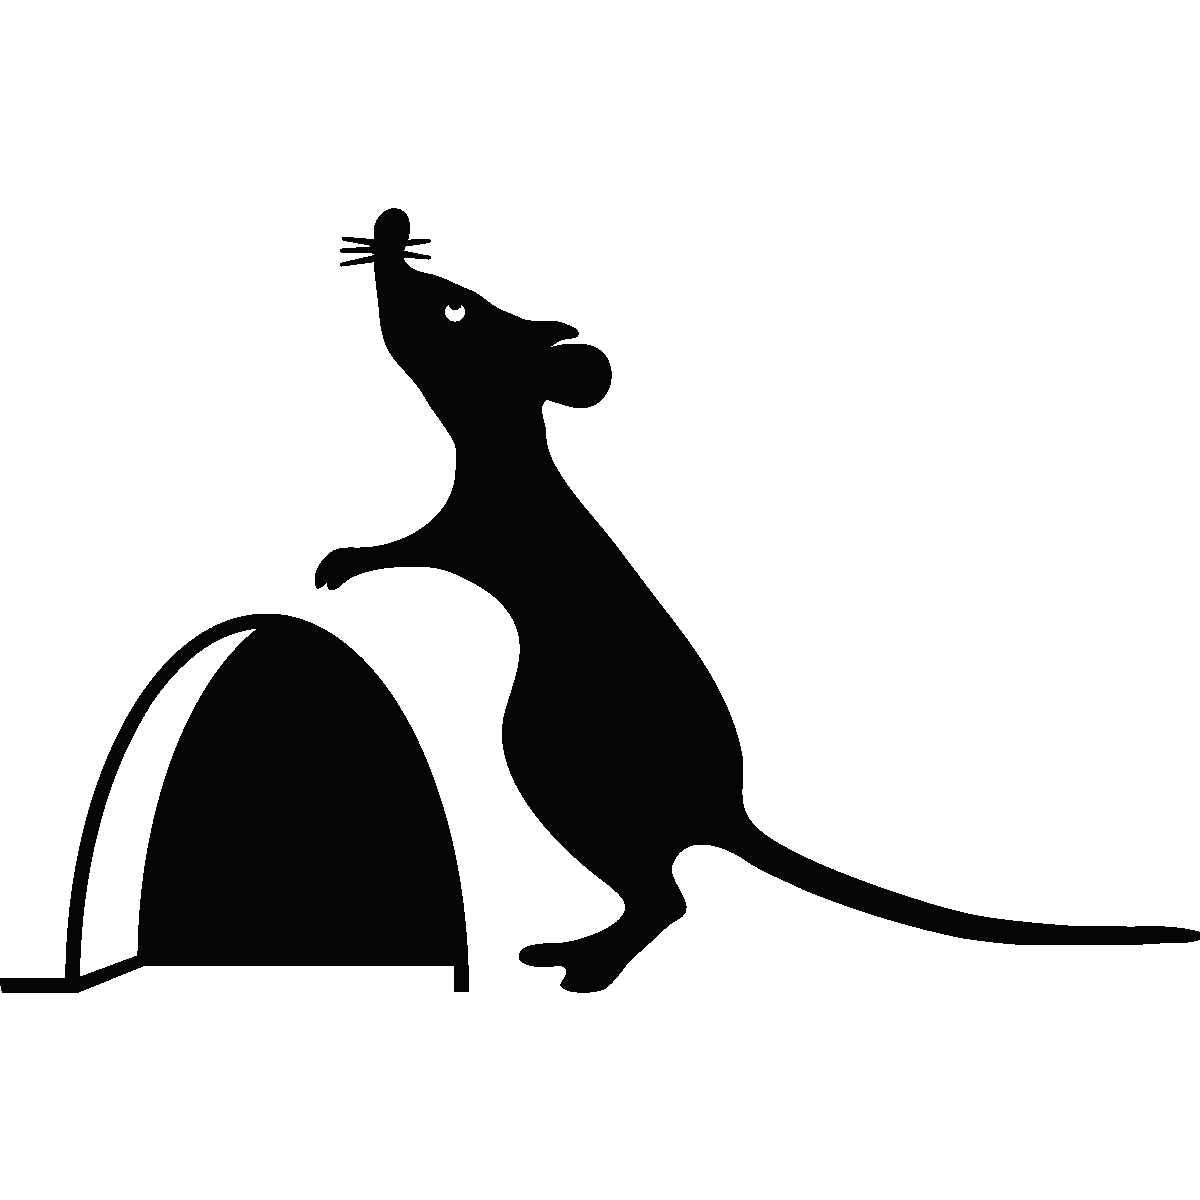 Cat chasing a mouse clipart clip library download http://www.ambiance-sticker.com/en/wall-sticker-for-light-switch-cute ... clip library download